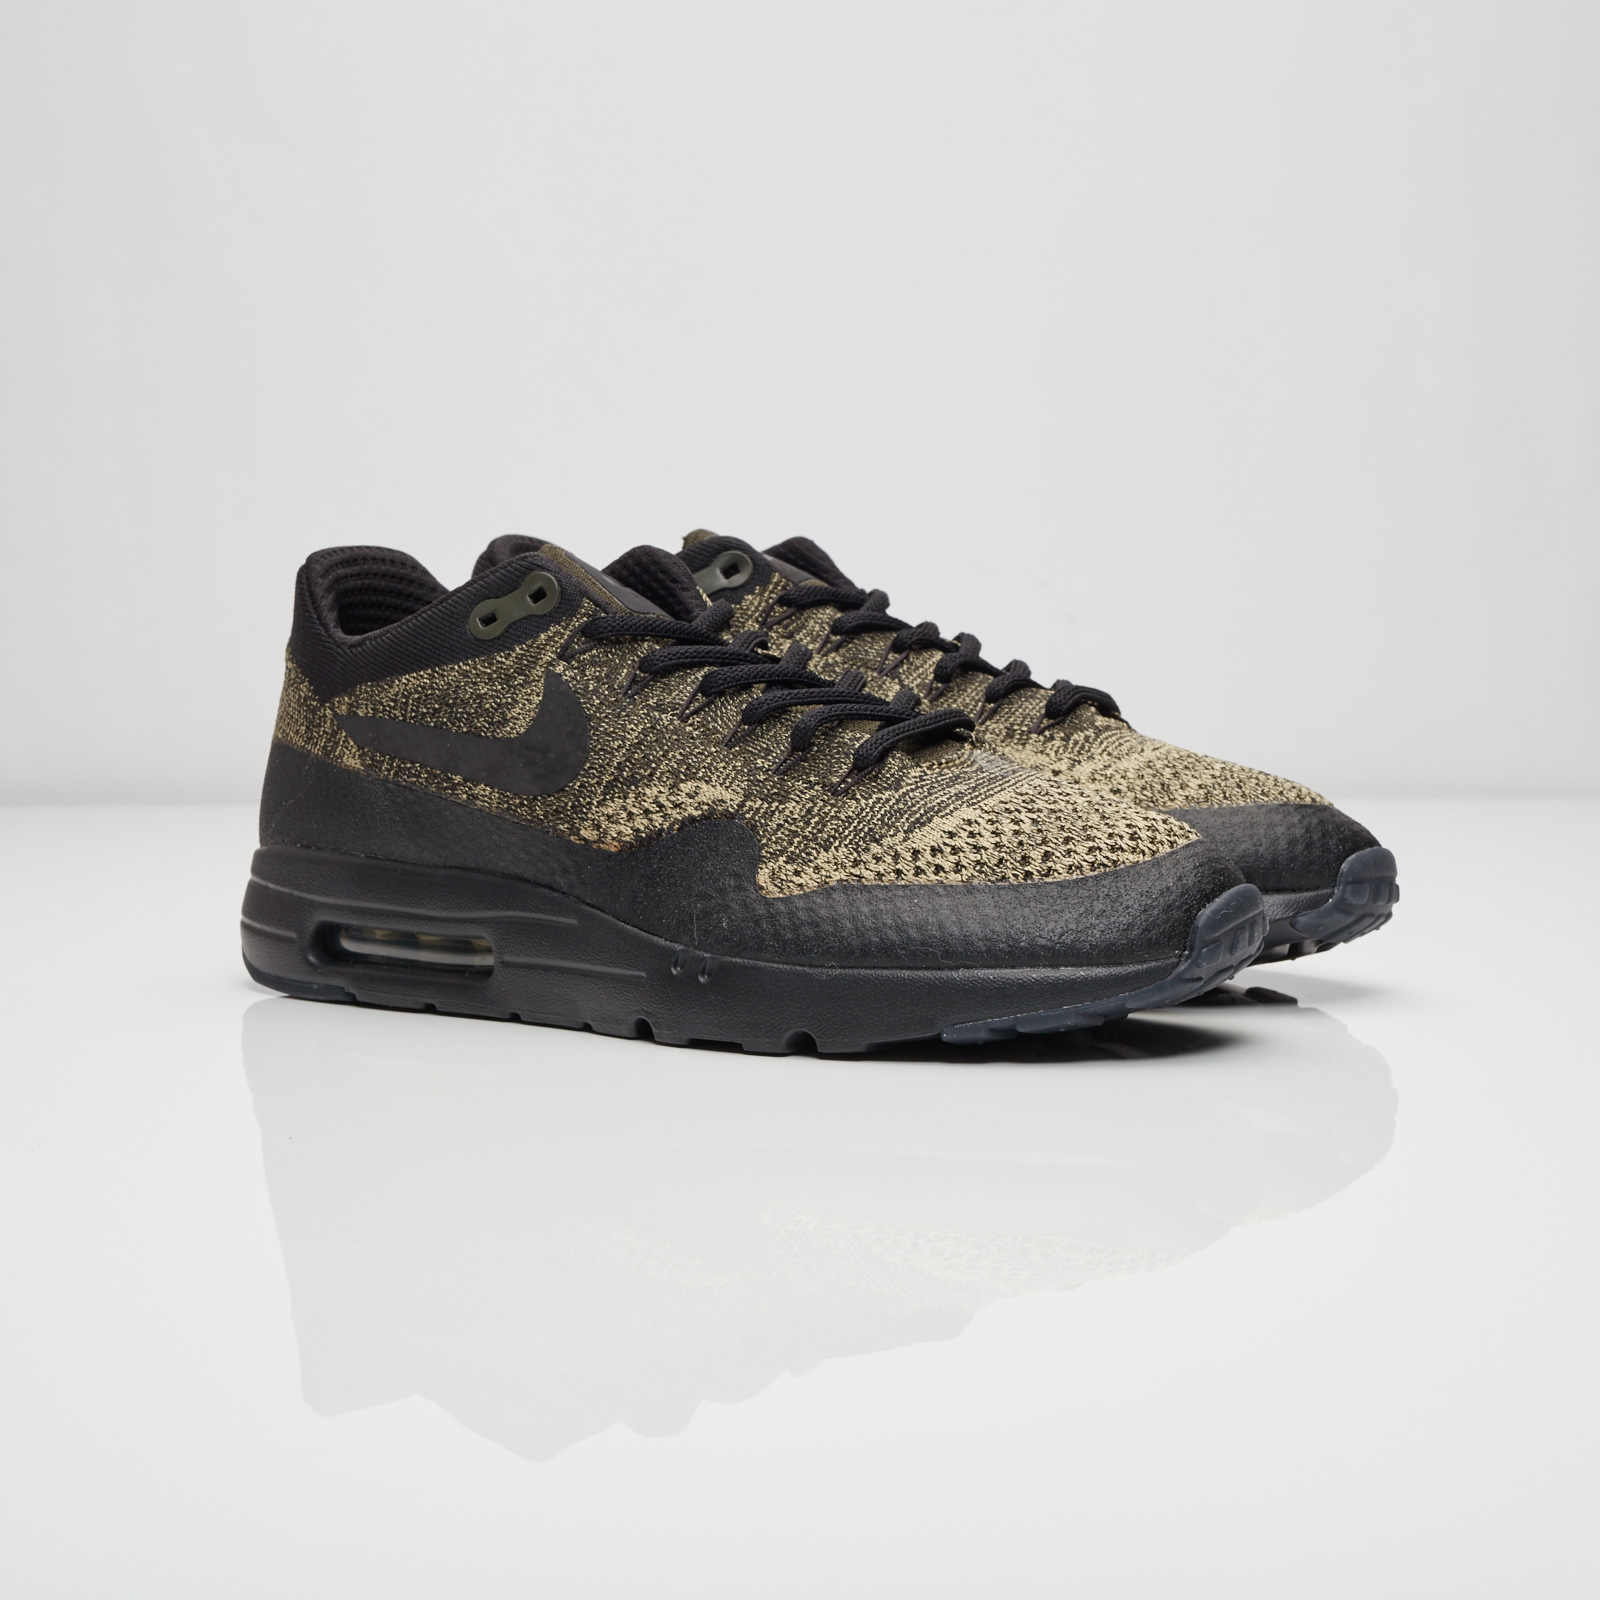 7bc098cdc92 Nike Air Max 1 Ultra Flyknit - 856958-203 - Sneakersnstuff ...